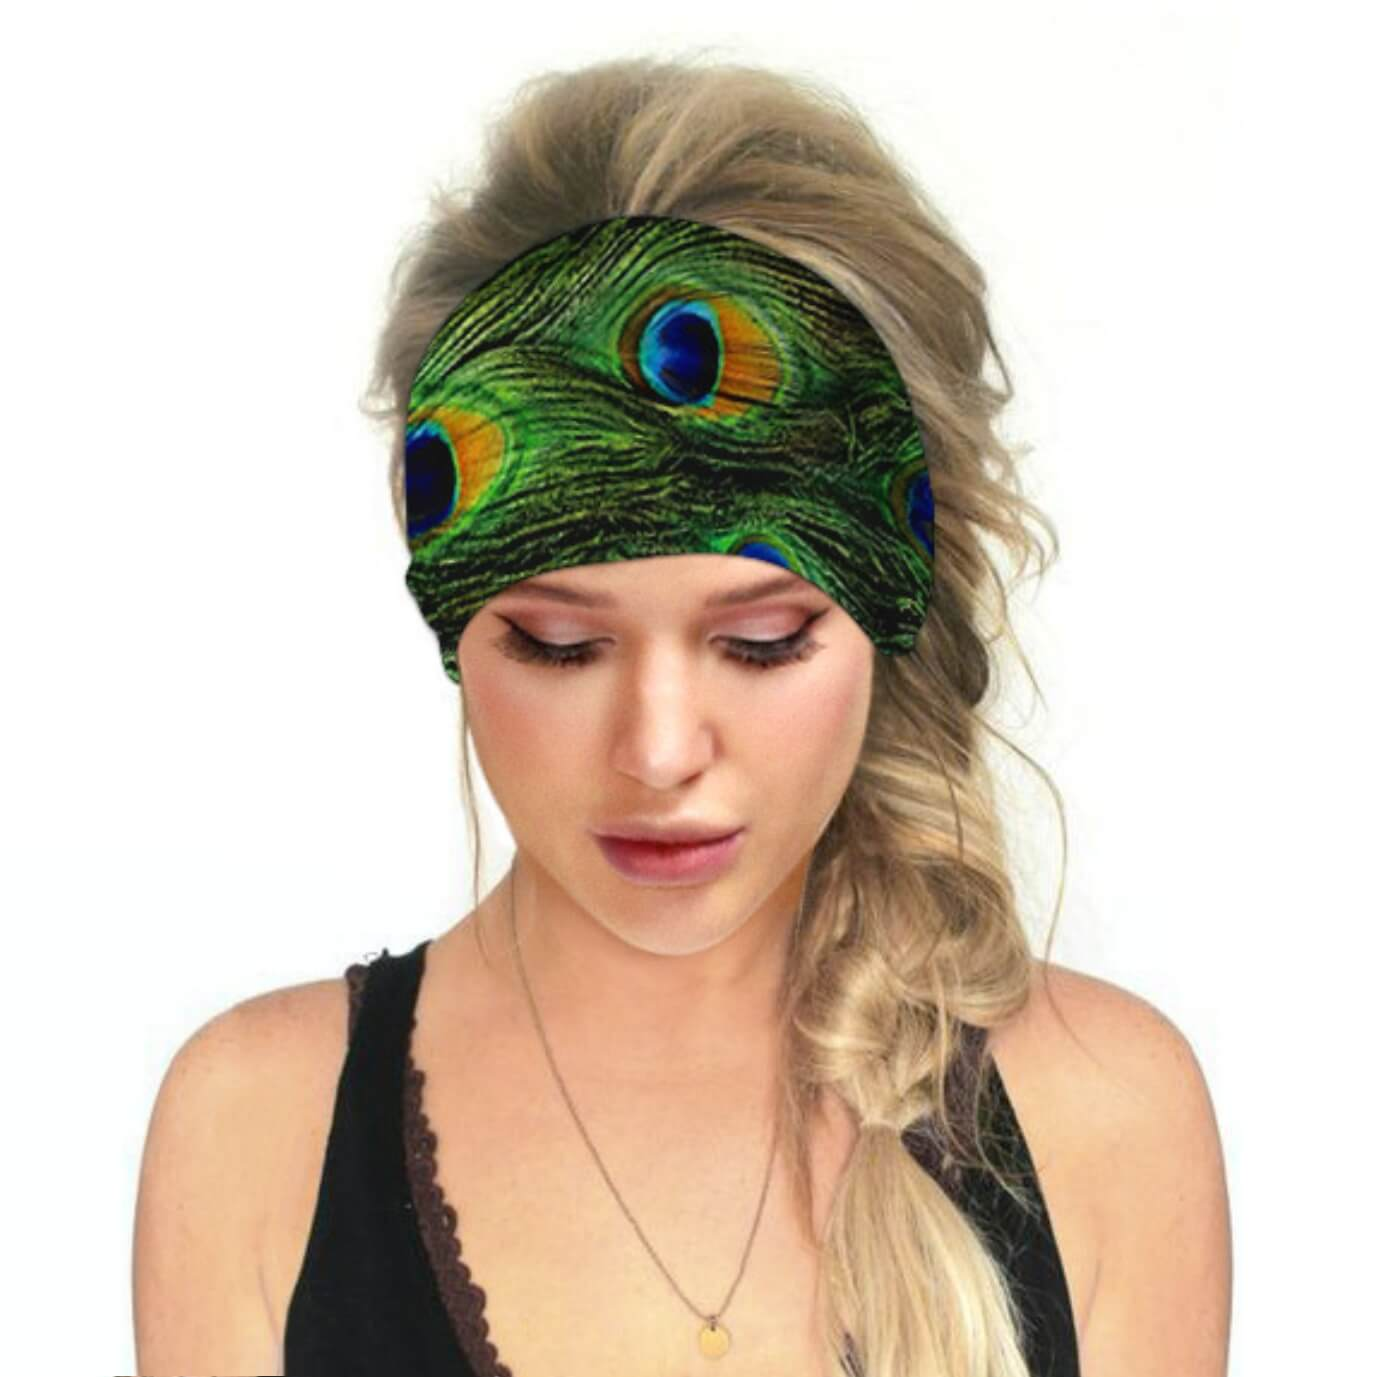 Hummingbird Bohemian Printed Multifunctional Headband - Peacock offers a secure fit to hold your hair back, and along with moisture-wicking fabric, allows you to stay fresh and focused on your workout. Perfect for all sorts of workout activities. Also suitable for daily wear as a hair band, head wrap, bandana, face cover, morning makeup and nighttime moisturizing.